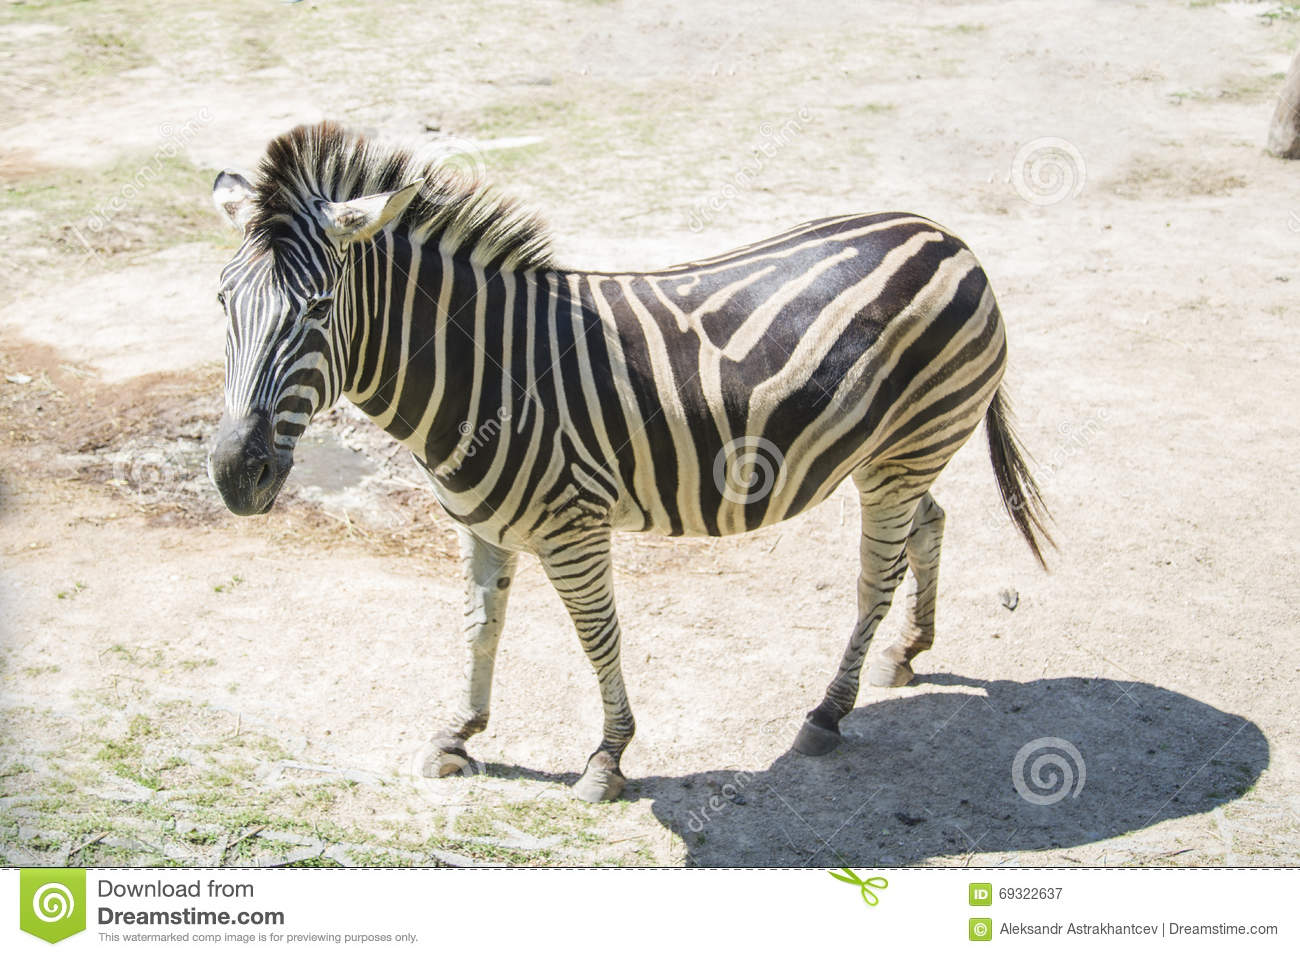 A lone Zebra walking in the Savannah